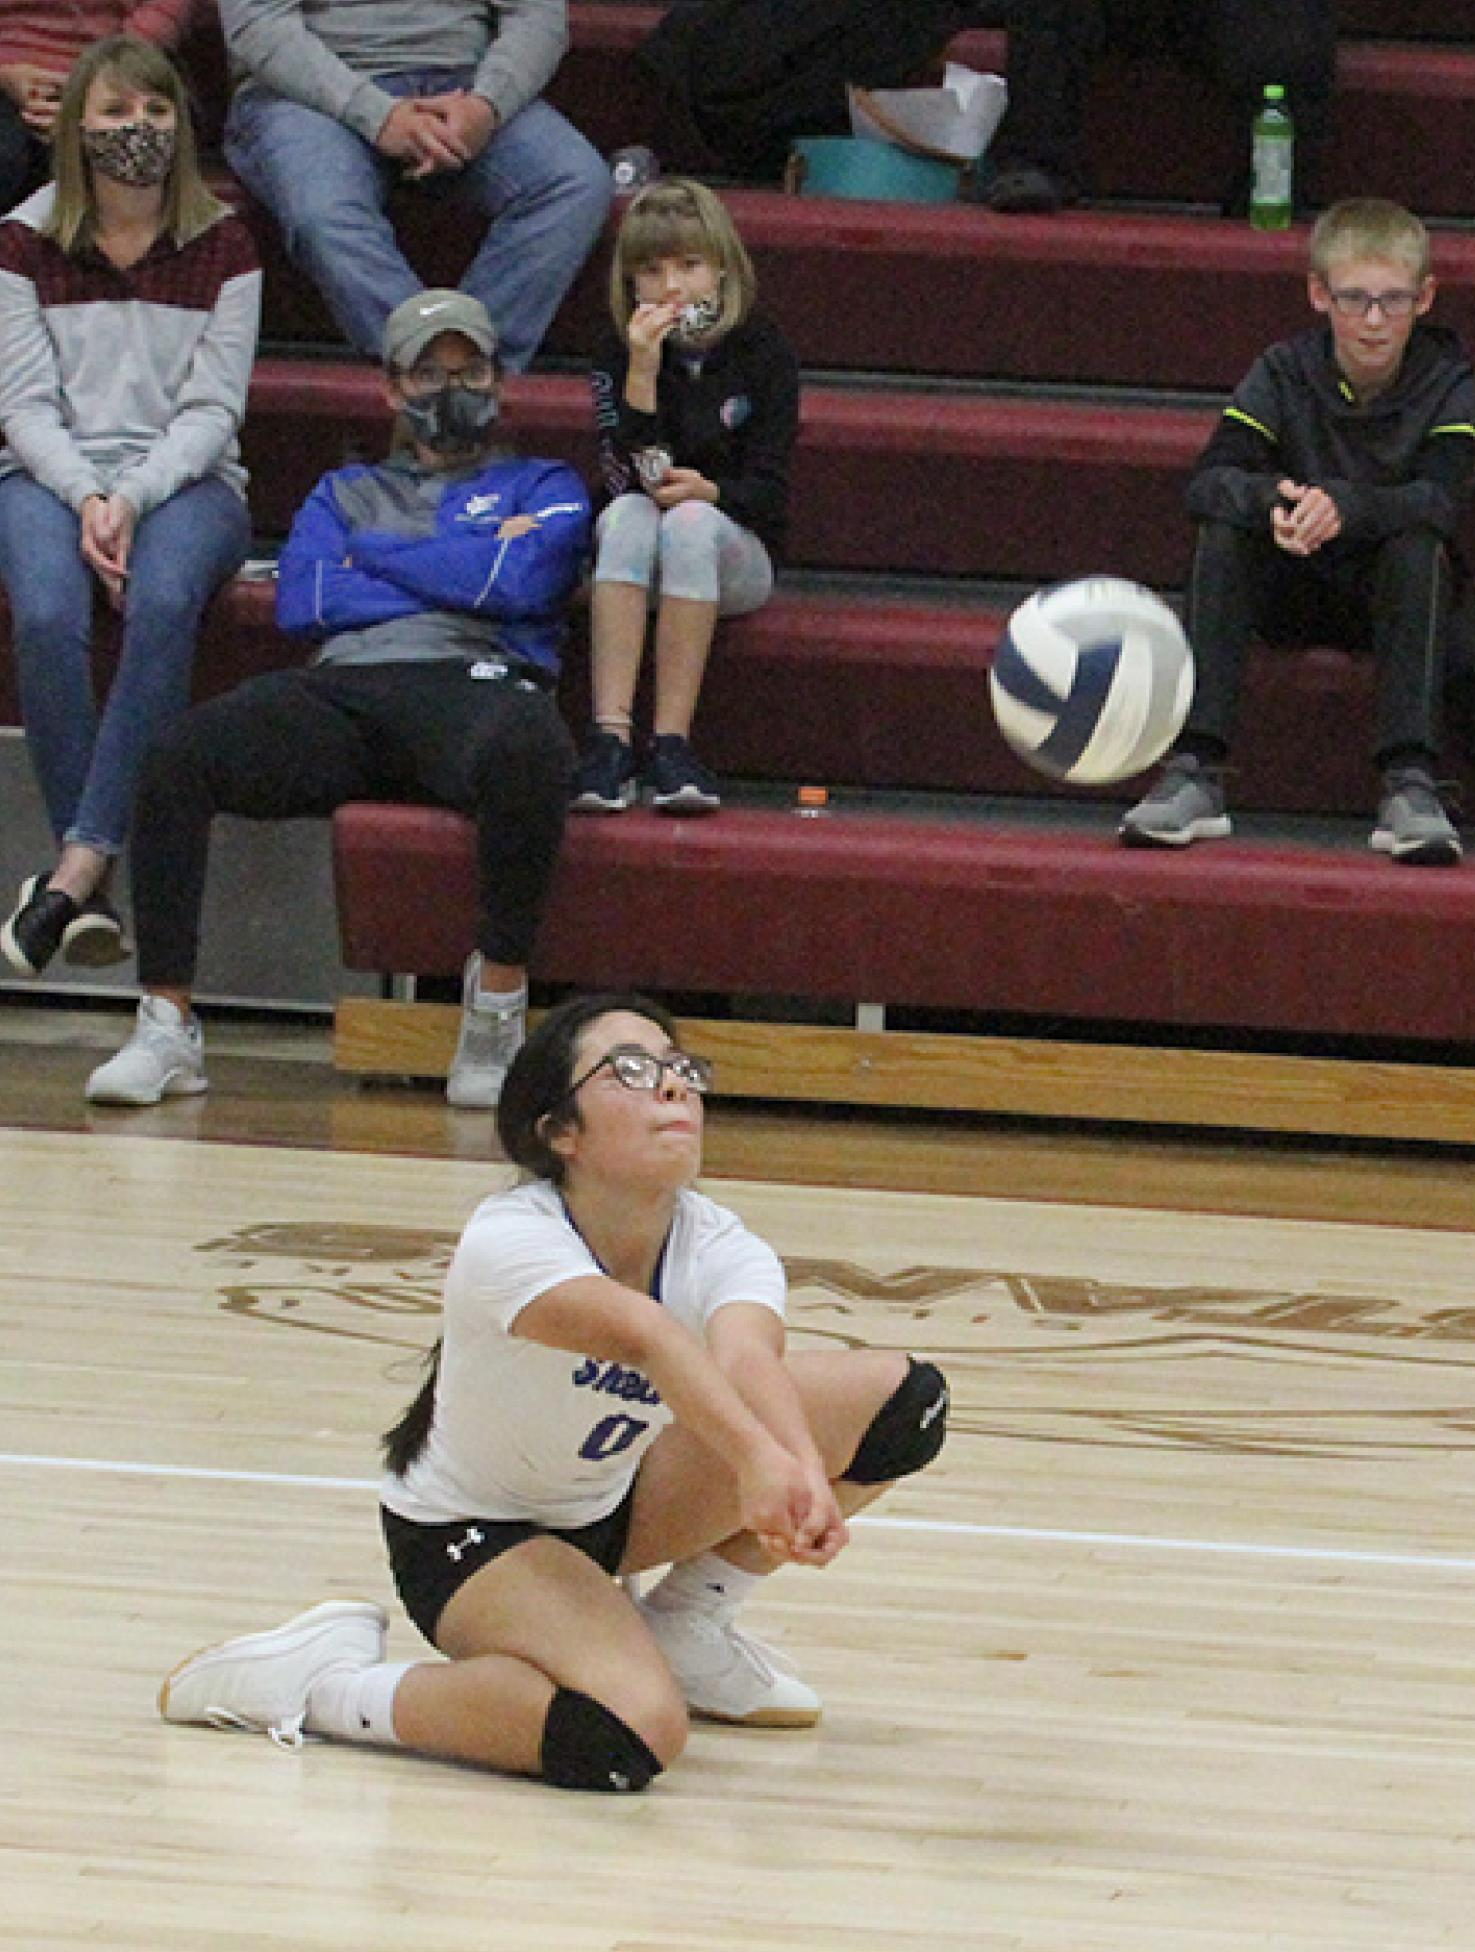 Alia Gomez, the team's libero, led with nine digs against Palmer, 15 in the Loomis game, and 20 against Franklin. In addition, she added a pair of ace serves. (—photo by Barb Berglund)